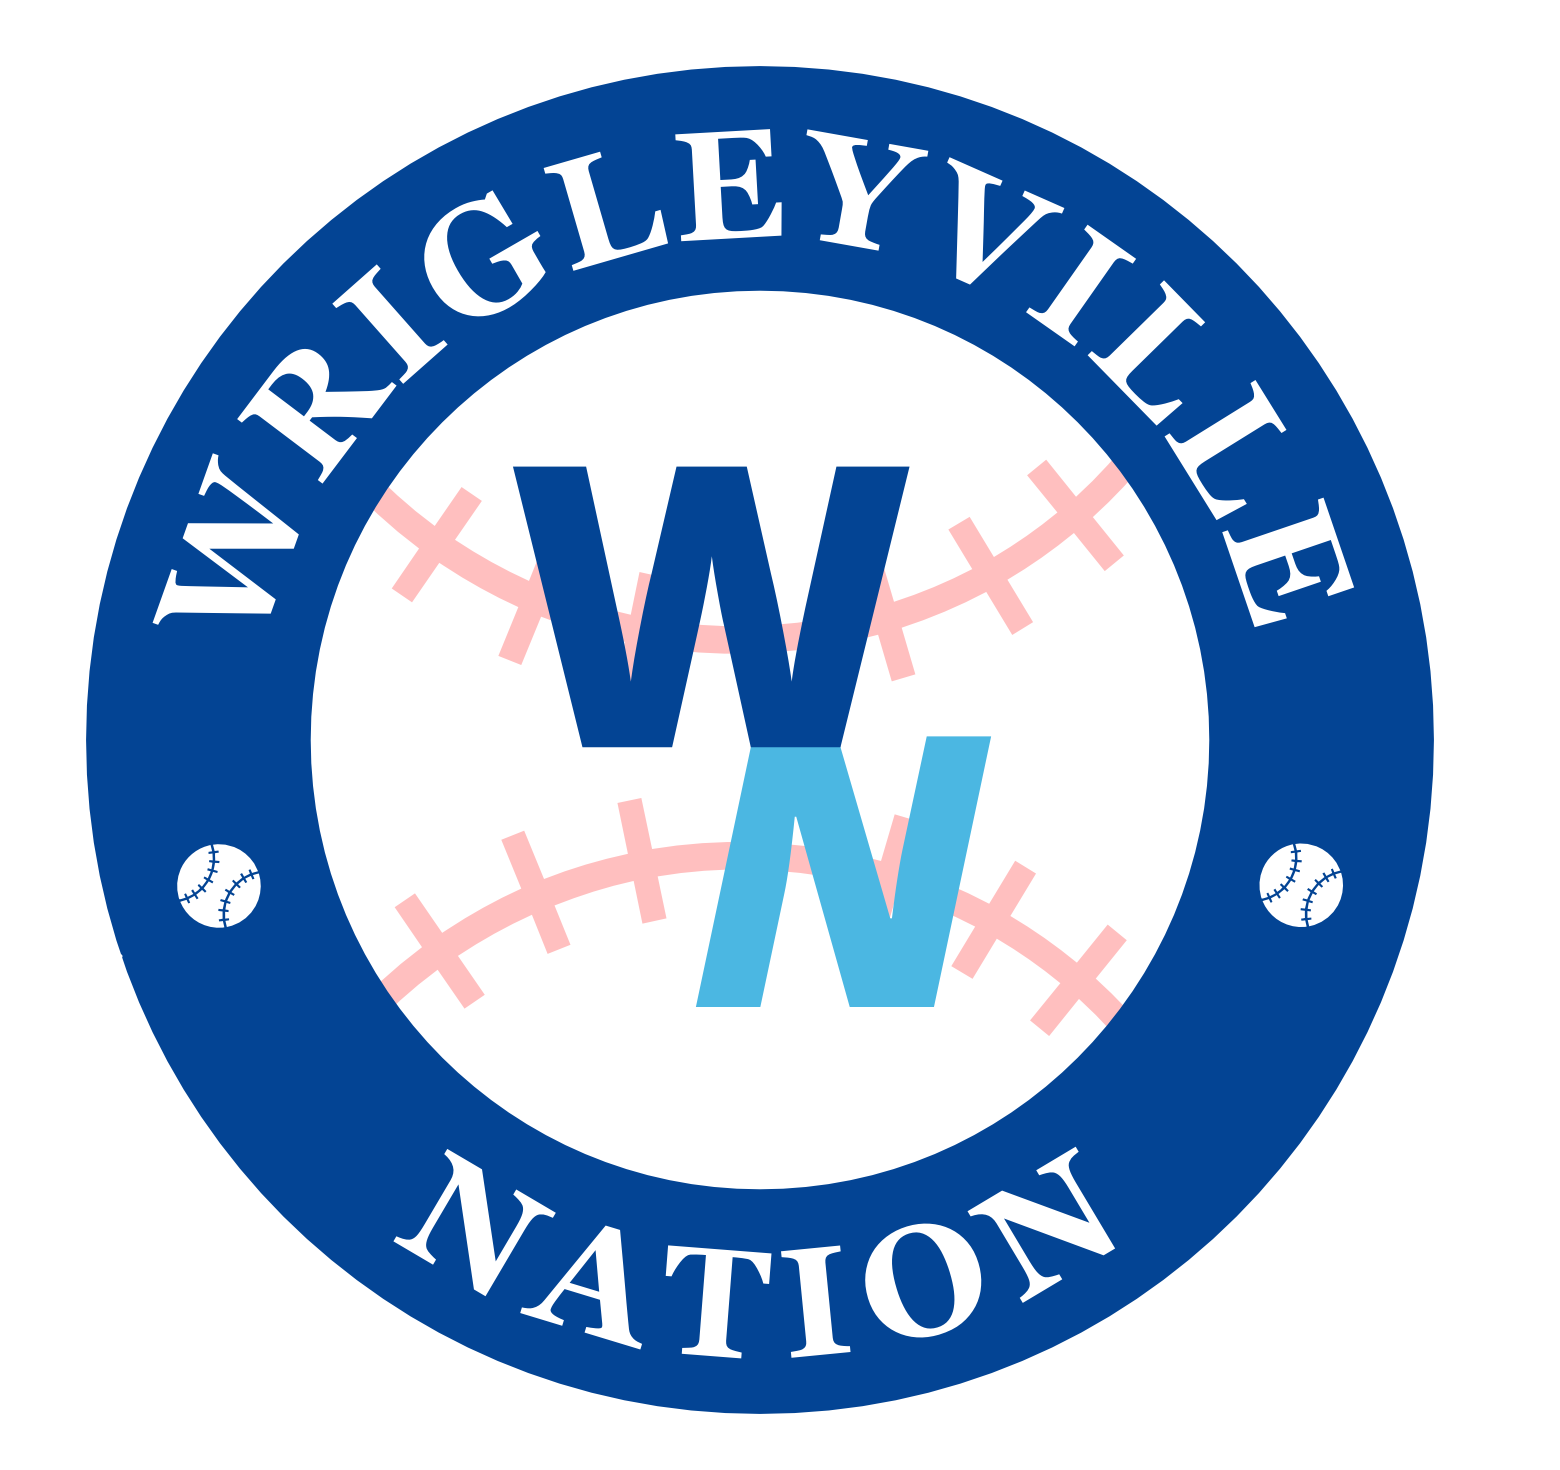 Artwork for Wrigleyville Nation Ep 104 - Guest: Steve Trout, former Cubs pitcher talks his career, & current Cubs win 7 in a row